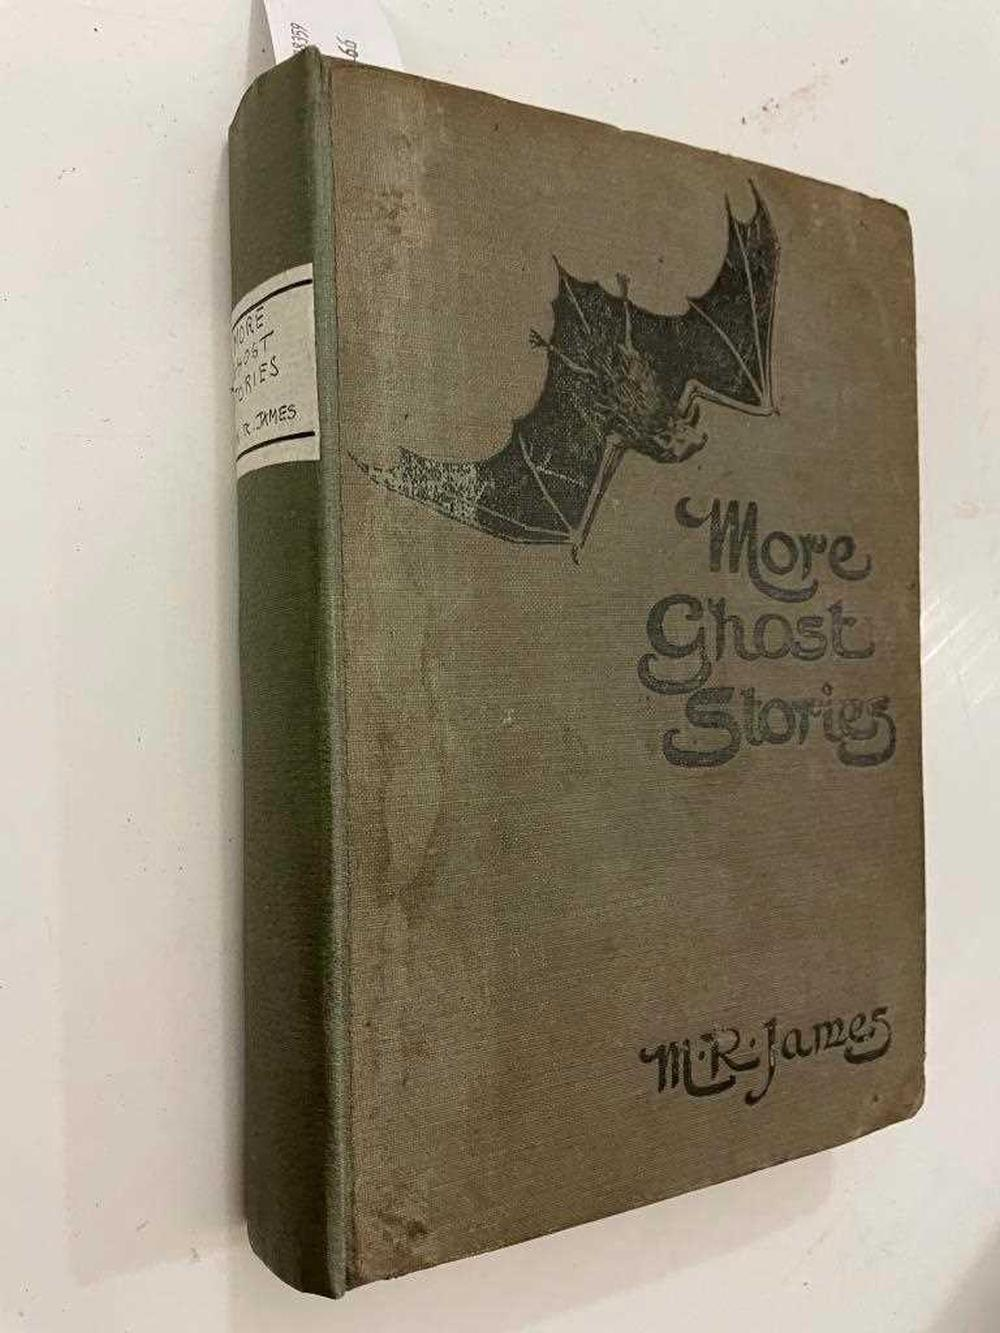 JAMES (M R) More Ghost Stories of an Antiquary, 1st edition London: Edward Arnold 1911, 8vo, half title, 2pp. publisher's catalogue at rear, a few leaves coarsely opened, sporadic marginal staining, publisher's grey pictorial cloth with modern...